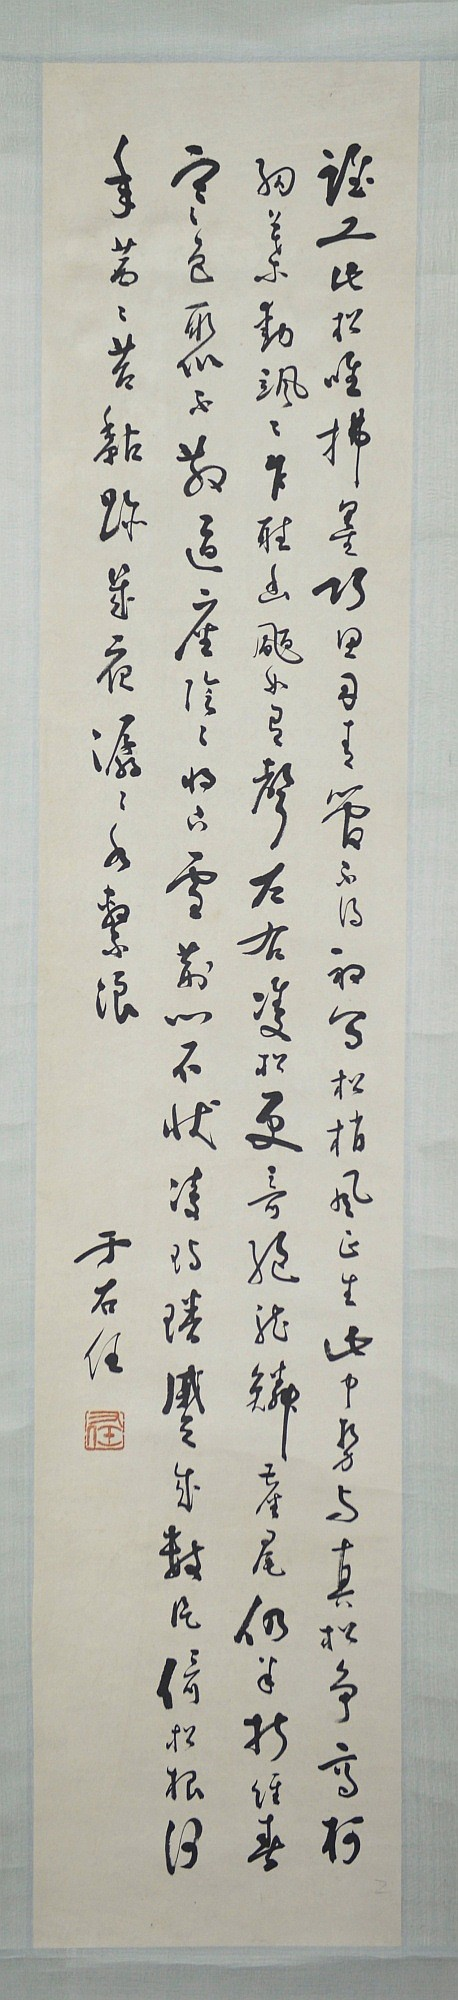 Chinese Calligraphy Signed By Yu Youren